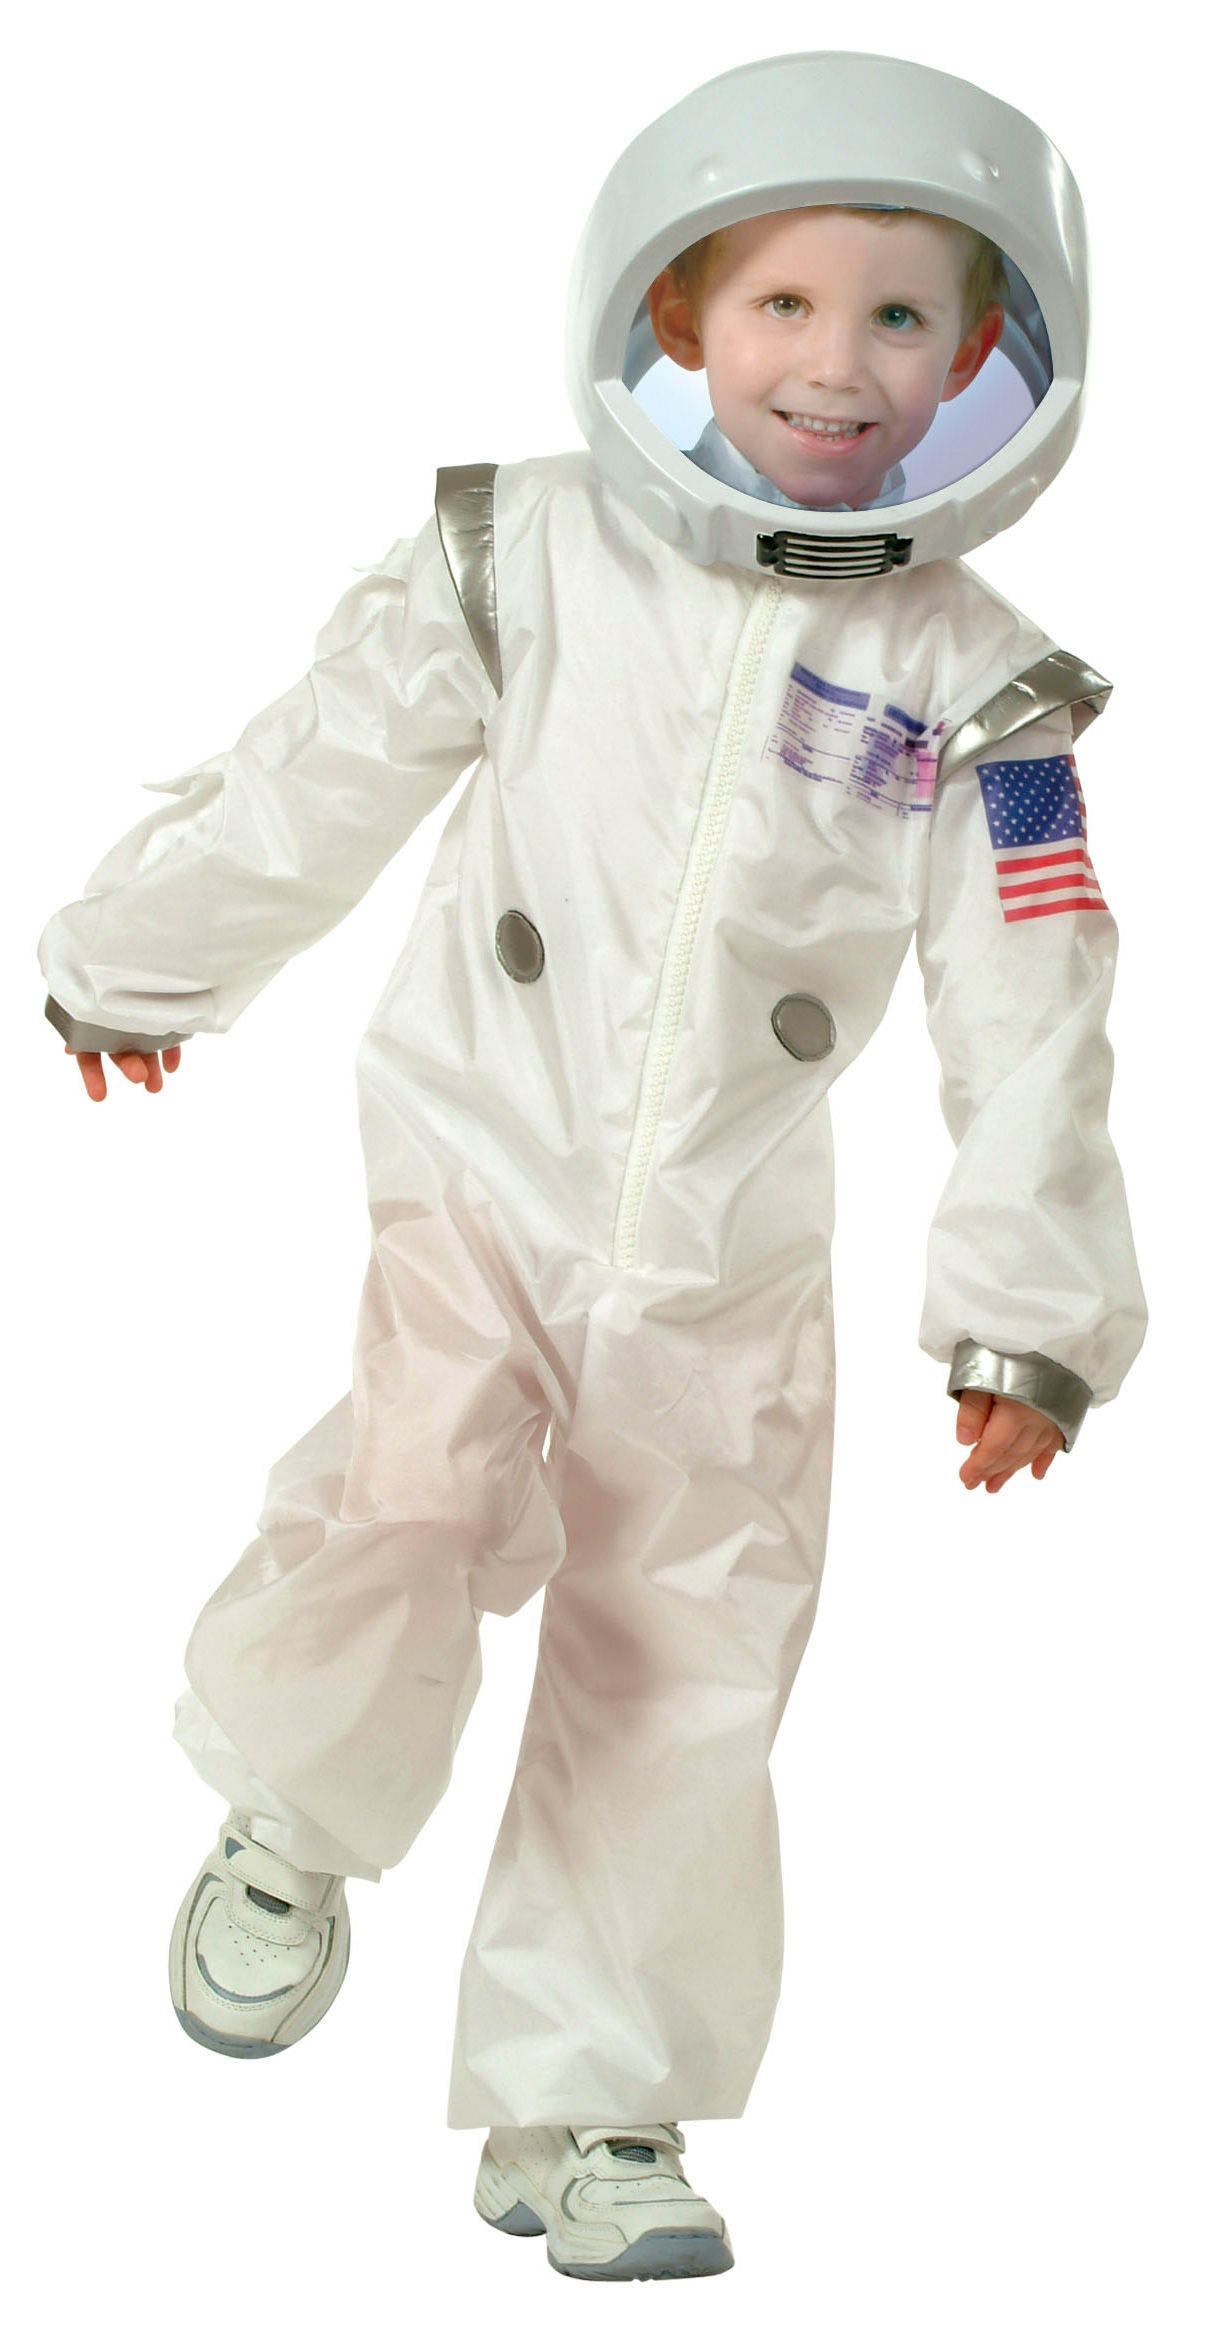 Find astronaut costumes for Halloween at great prices in many sizes and styles. We have adult and kids astronaut costumes as well as a space helmet and boots.